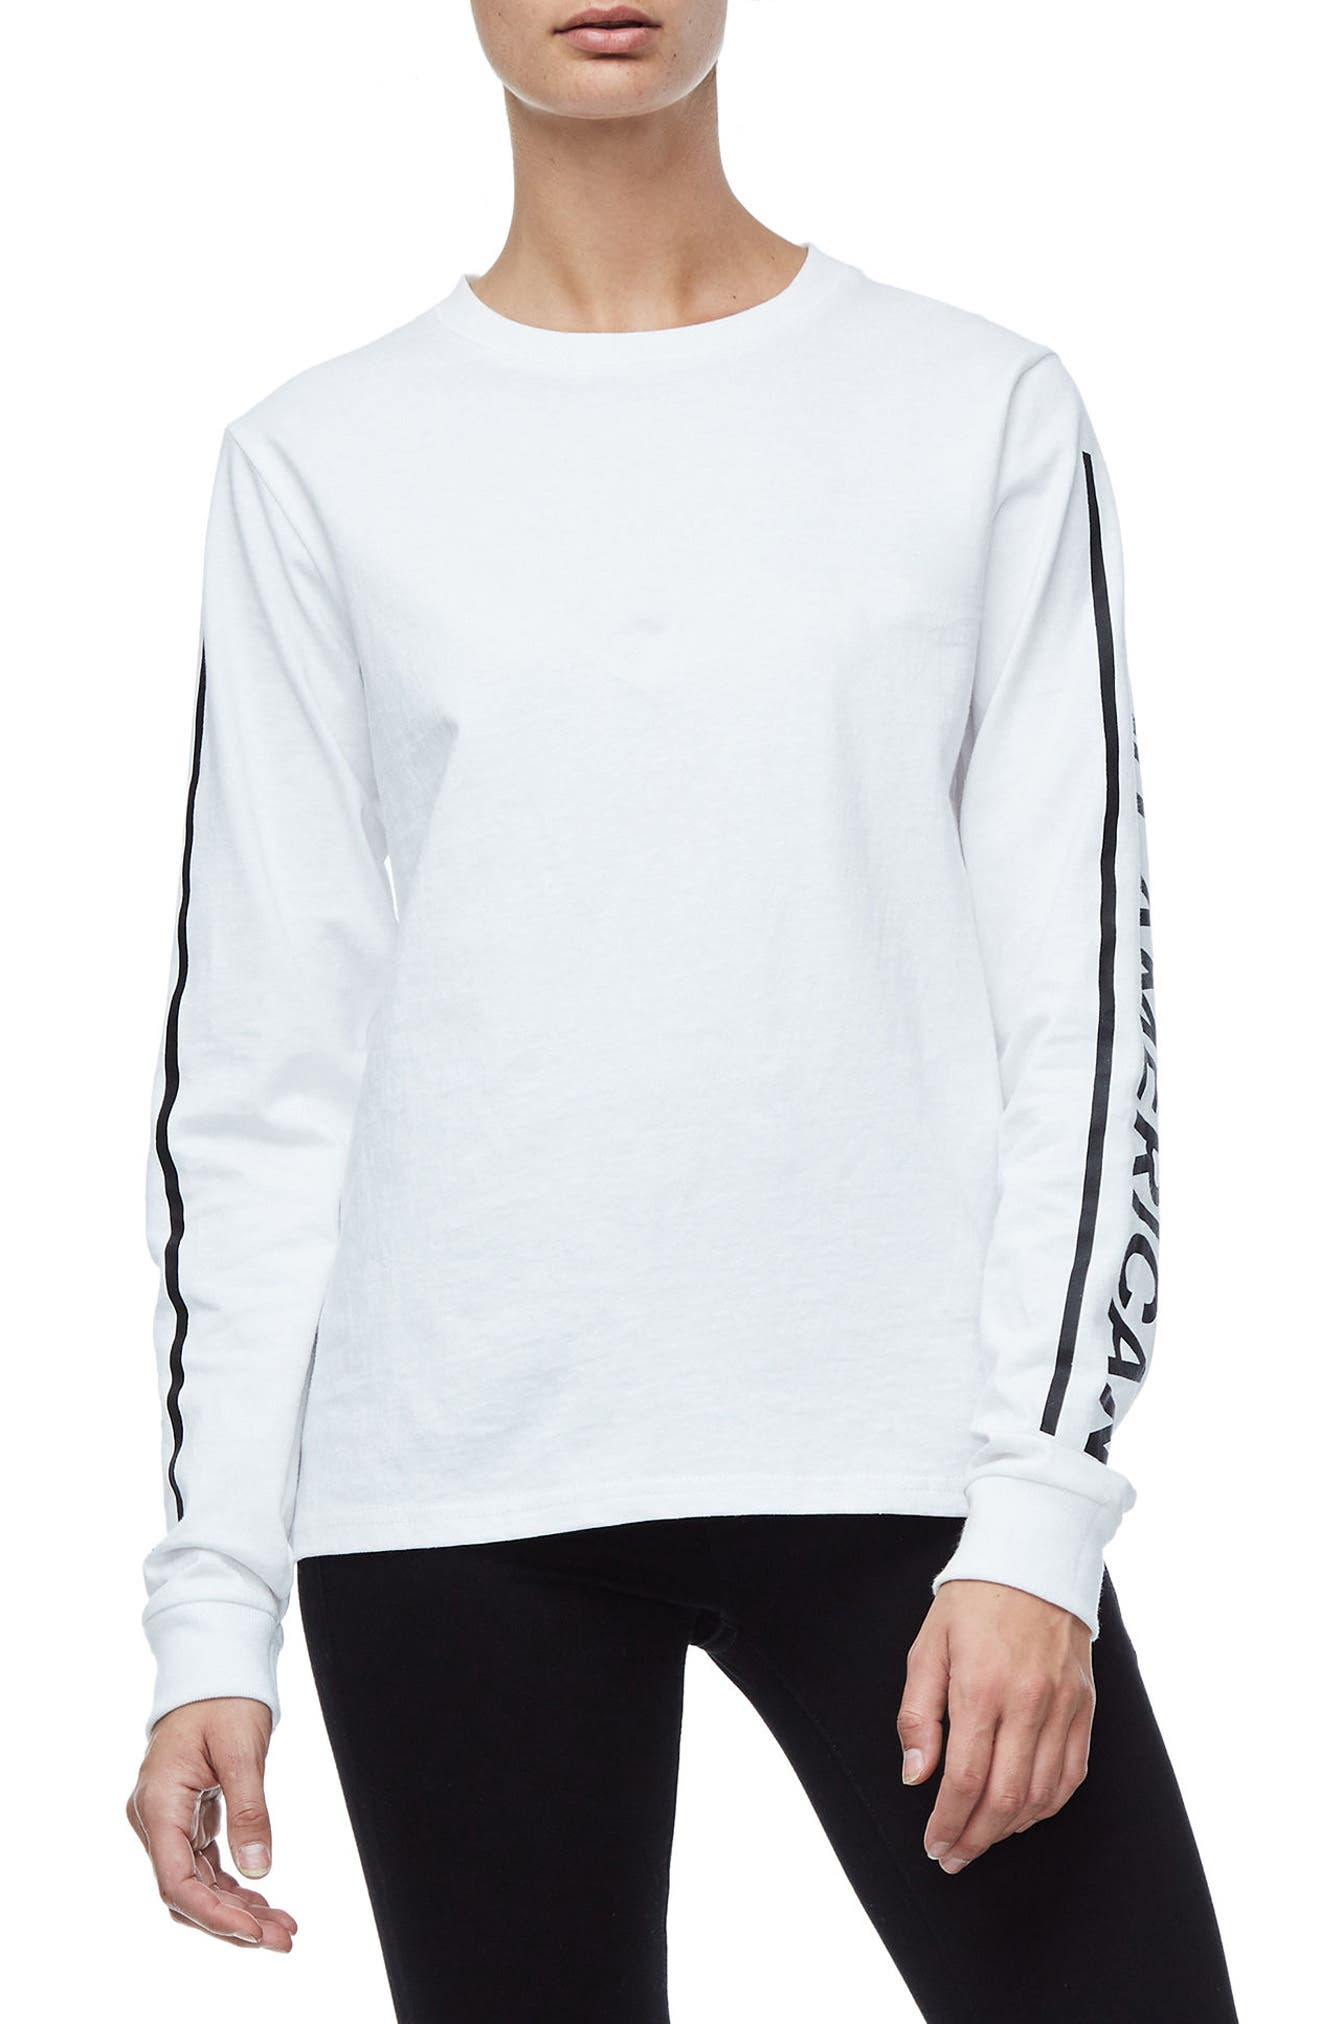 Goodies Long Sleeve Graphic Tee,                         Main,                         color, White001